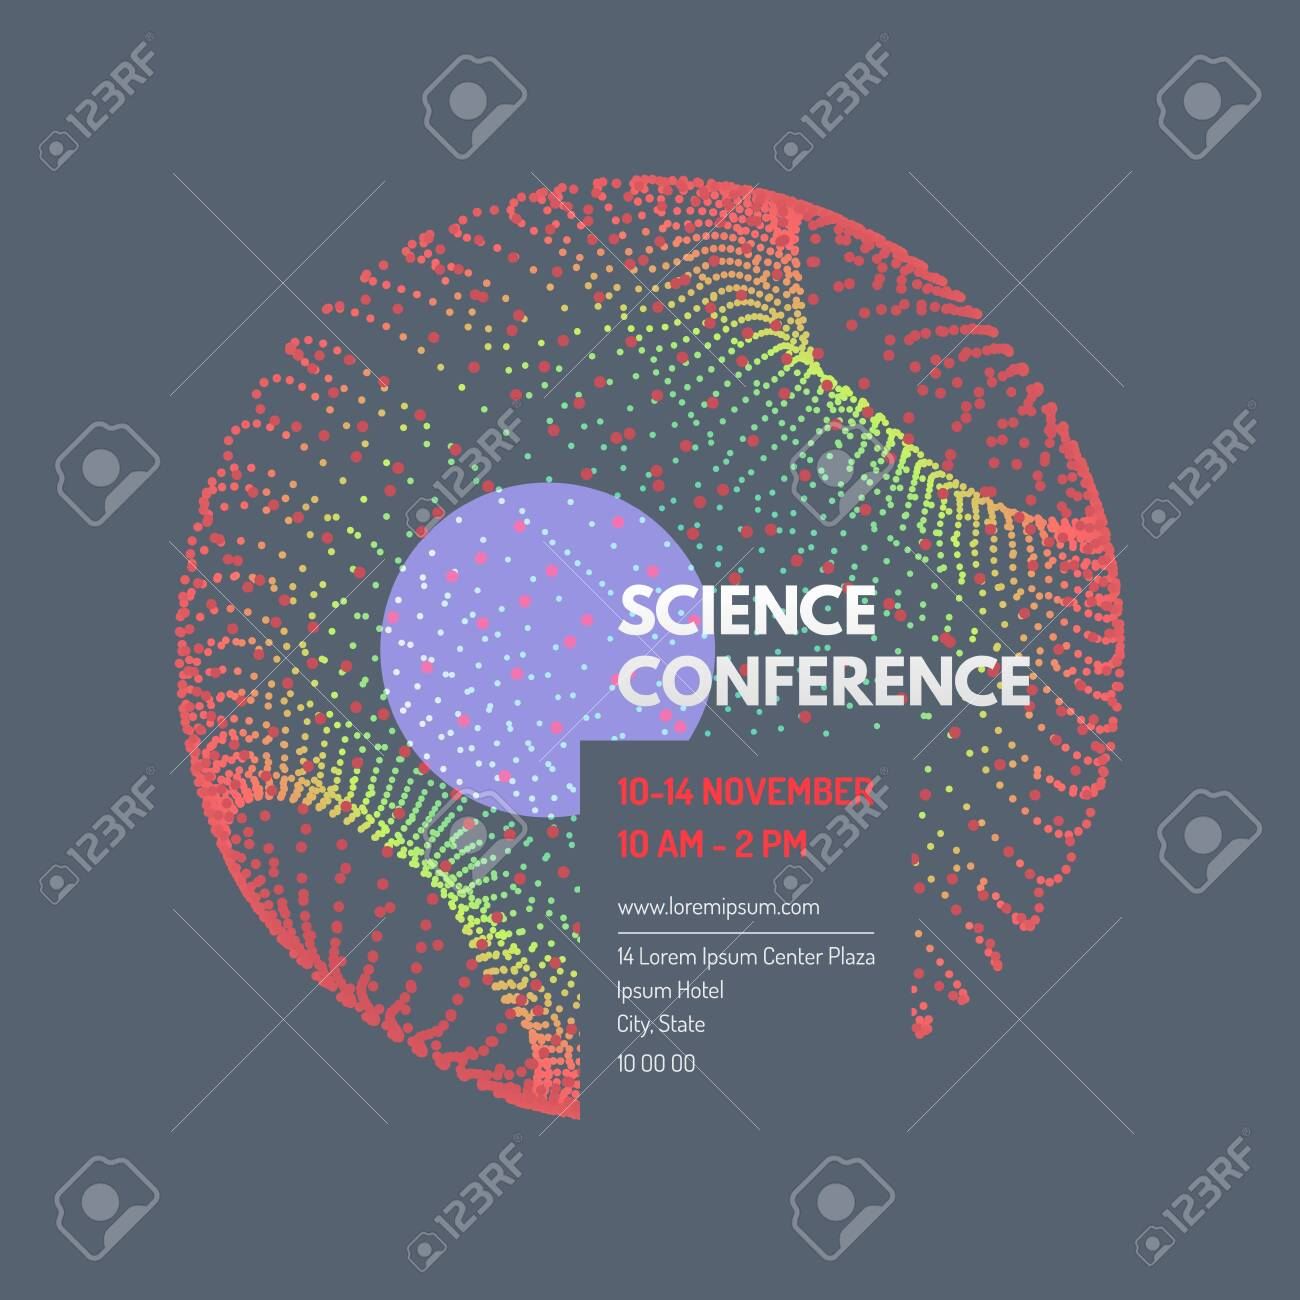 Science Conference Sphere Business Event Invitation Template